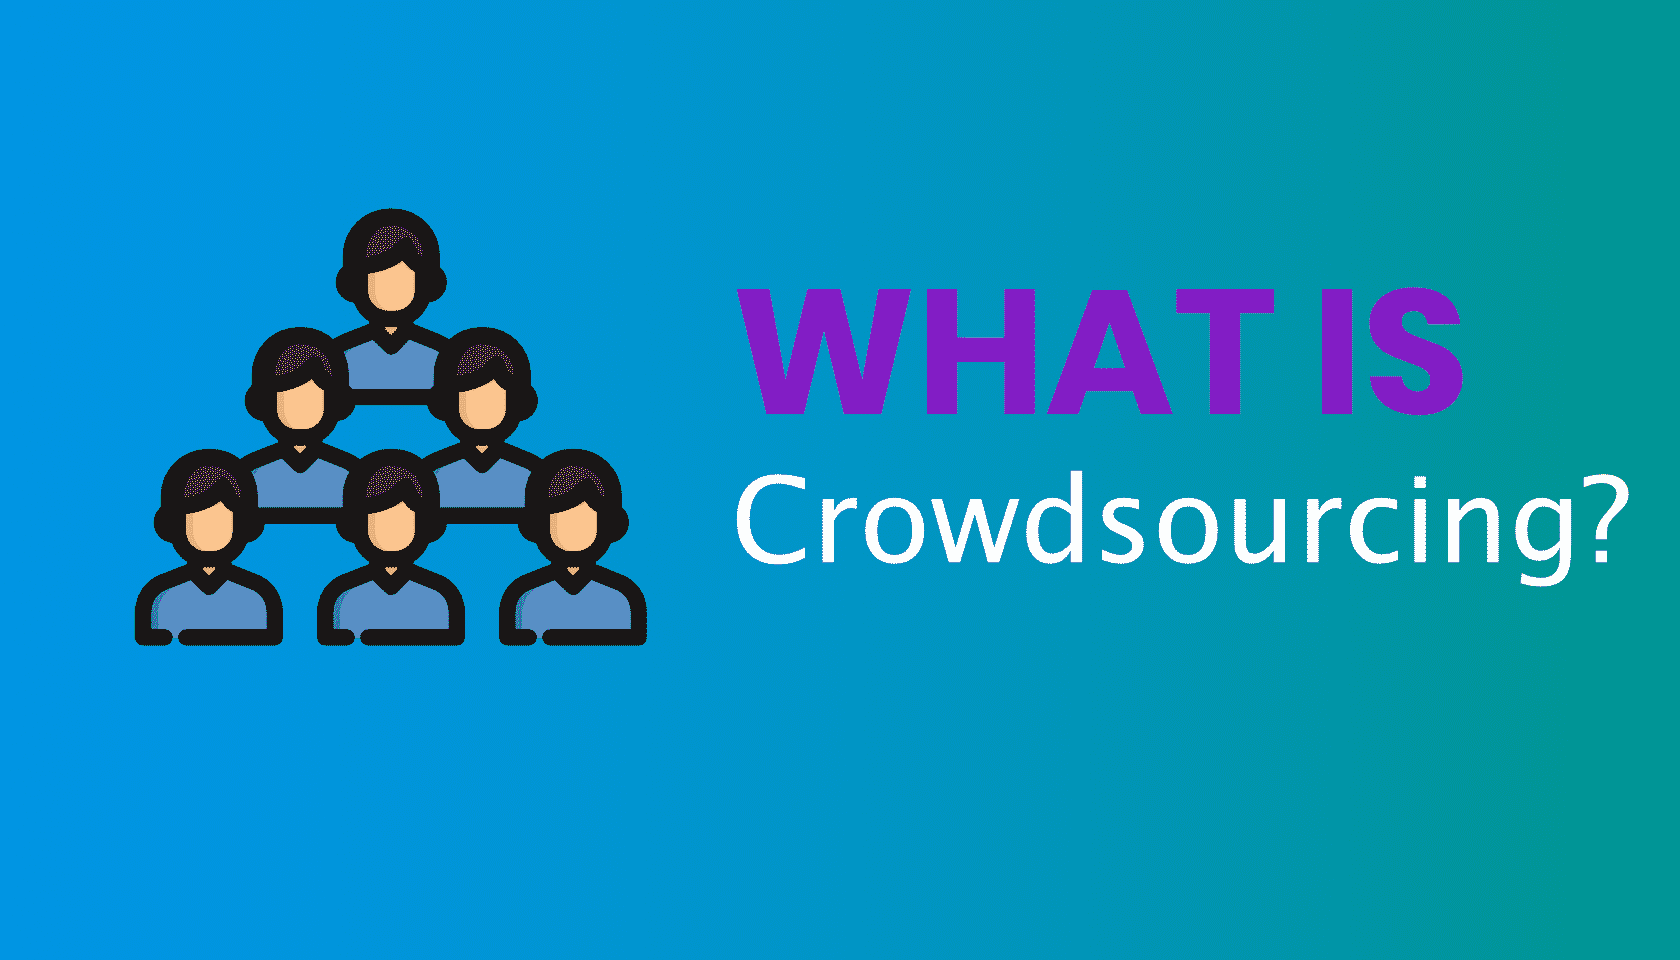 What is: Crowdsourcing